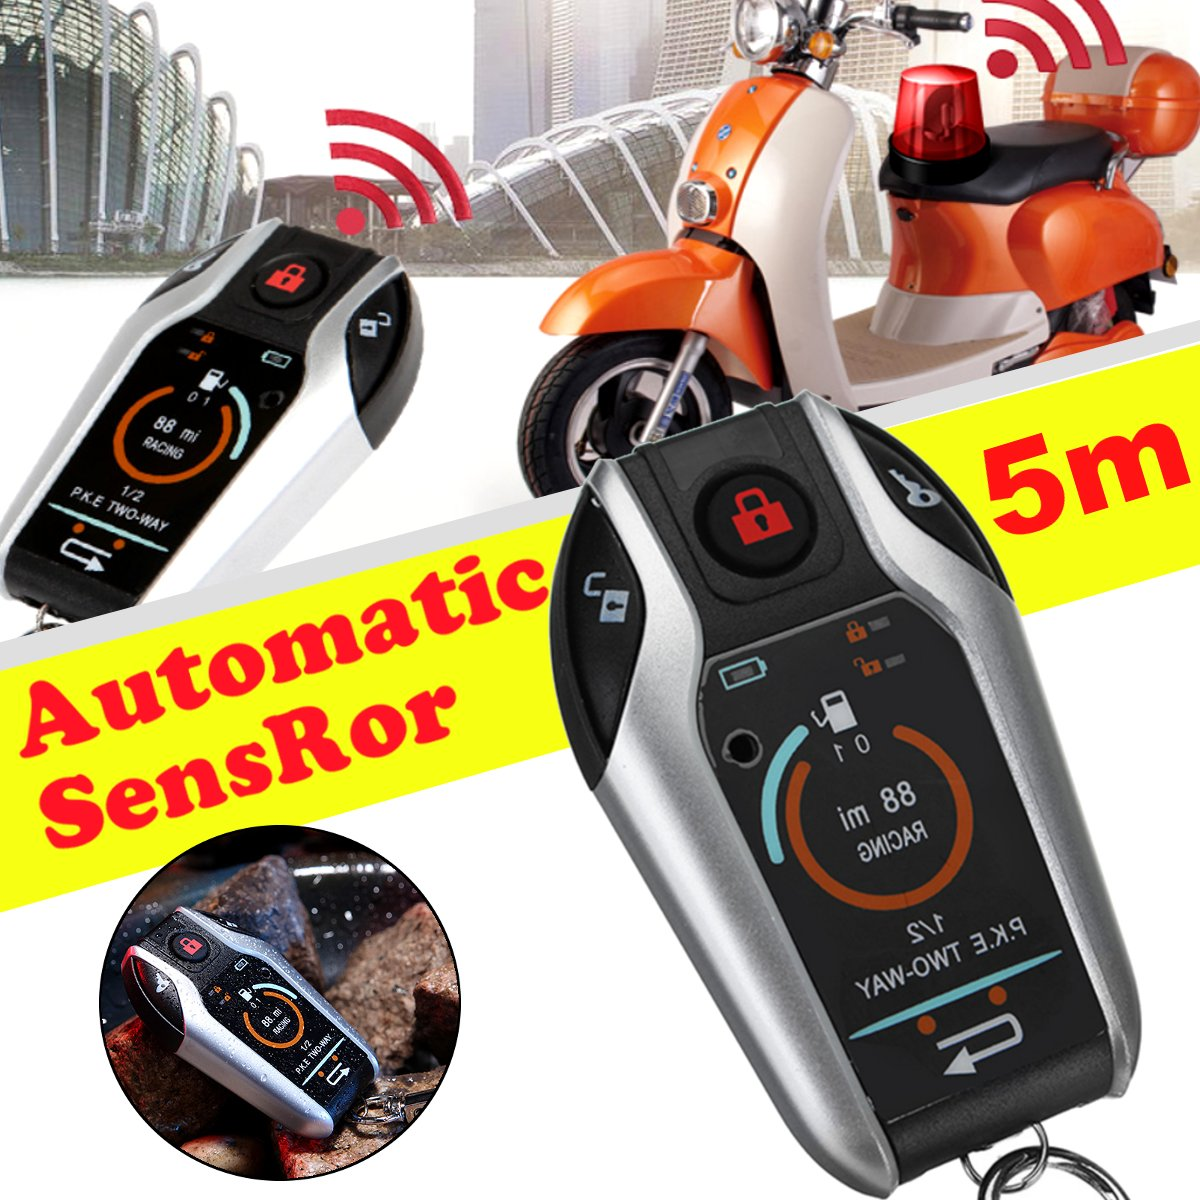 5M Automatic Sensor 2 Way Engine Start Motorcycle Bike Scooter PKE Alarm System Anti-theft Security Remote Control Alarm Lock